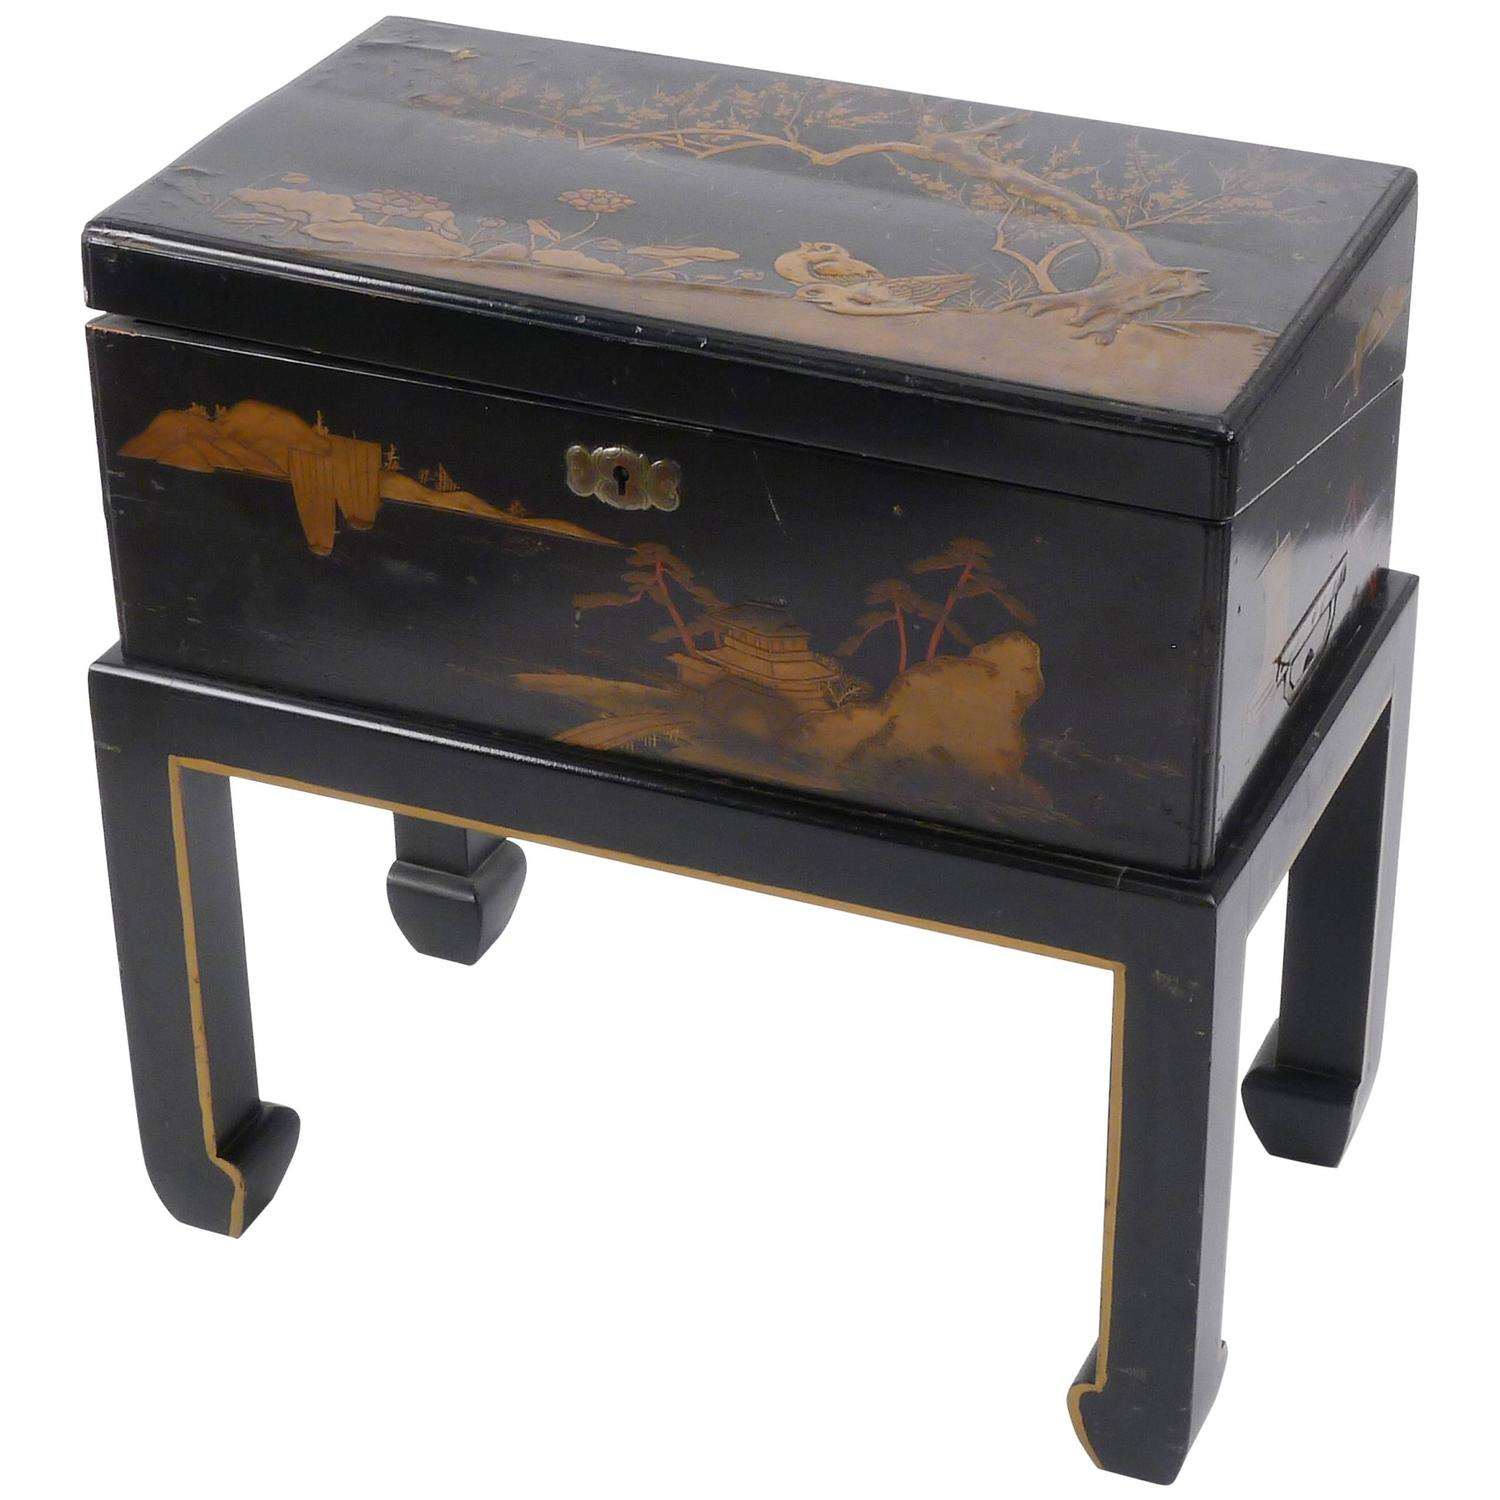 Superb img of Japanese Lacquered Lap Desk on Stand For Sale at 1stdibs with #67462A color and 1500x1500 pixels